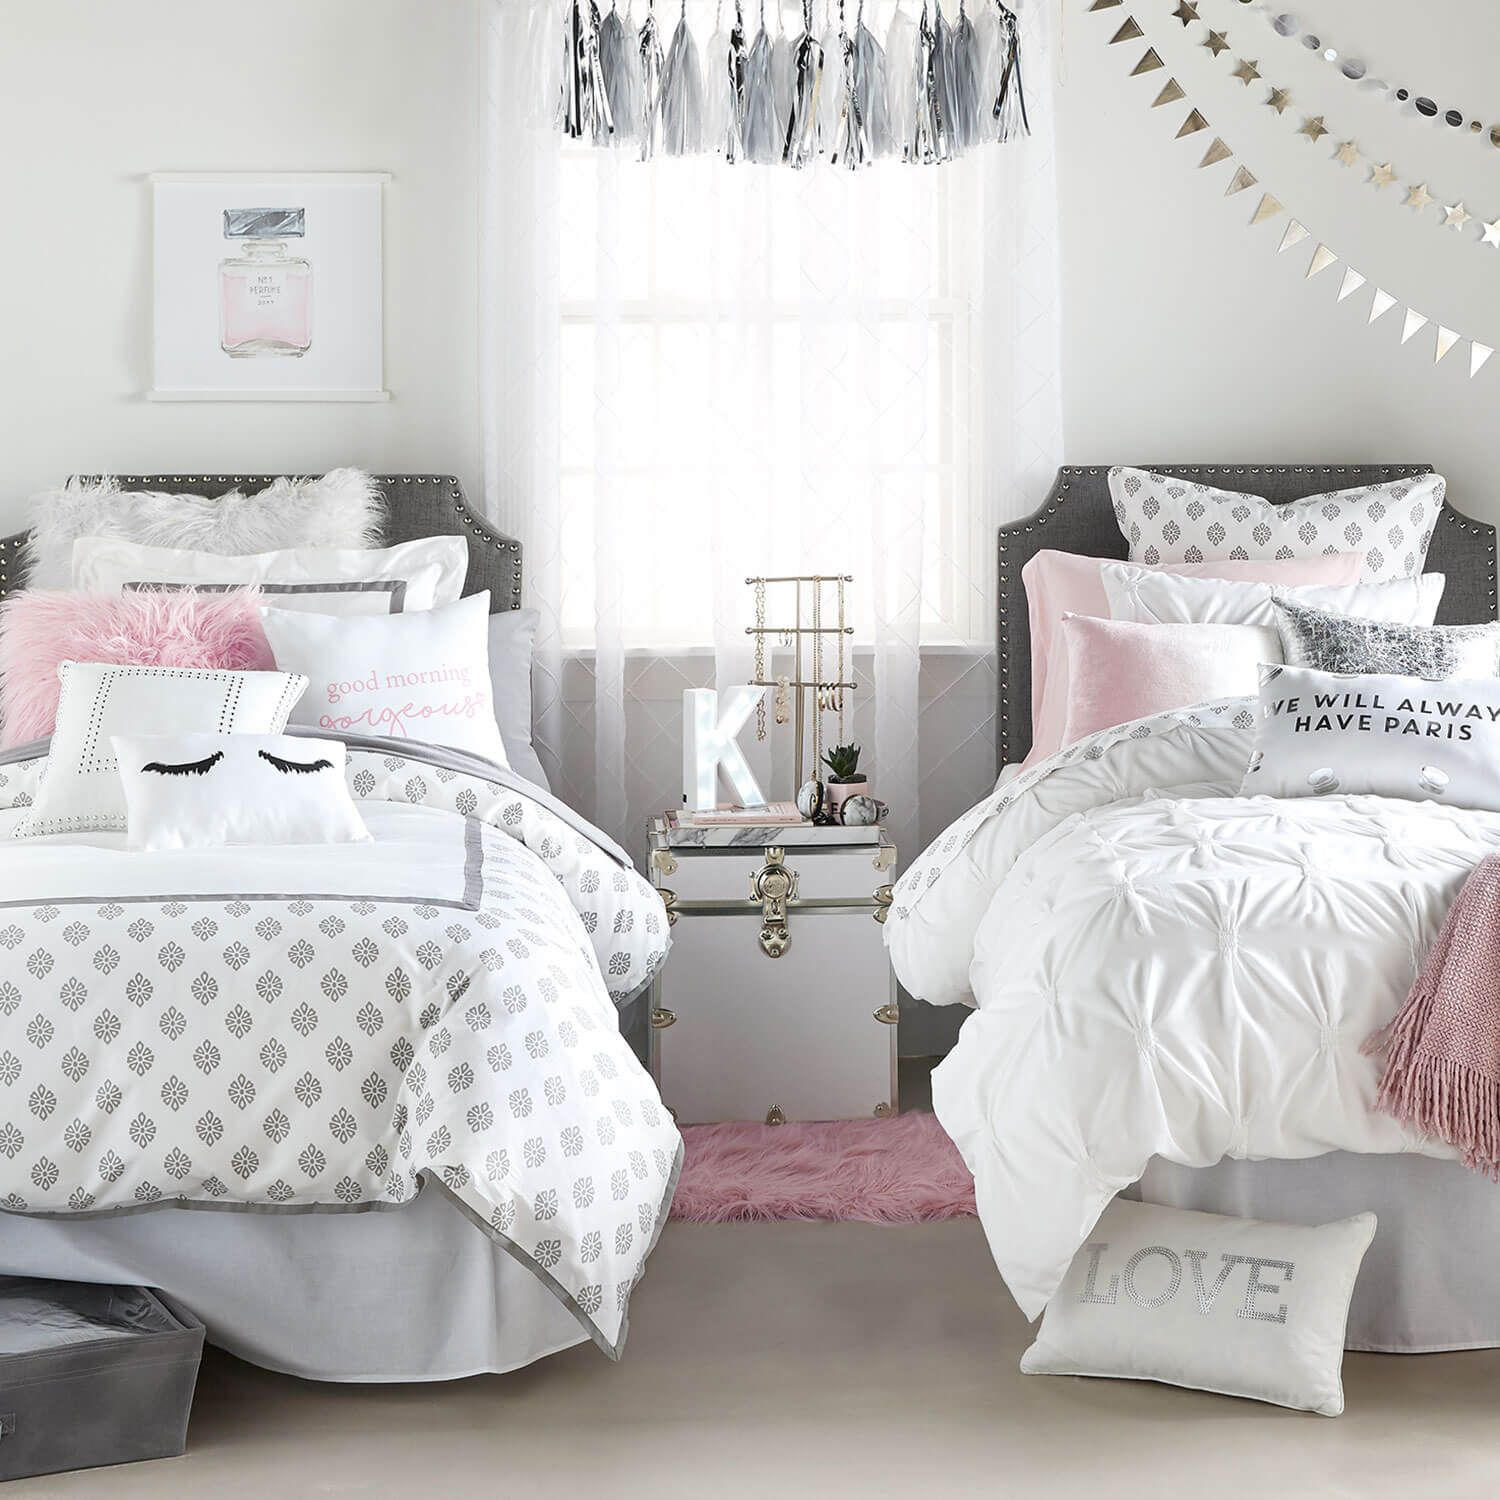 Best Dormify Hotel Haven Room Shop Dormify Com To Get This 400 x 300